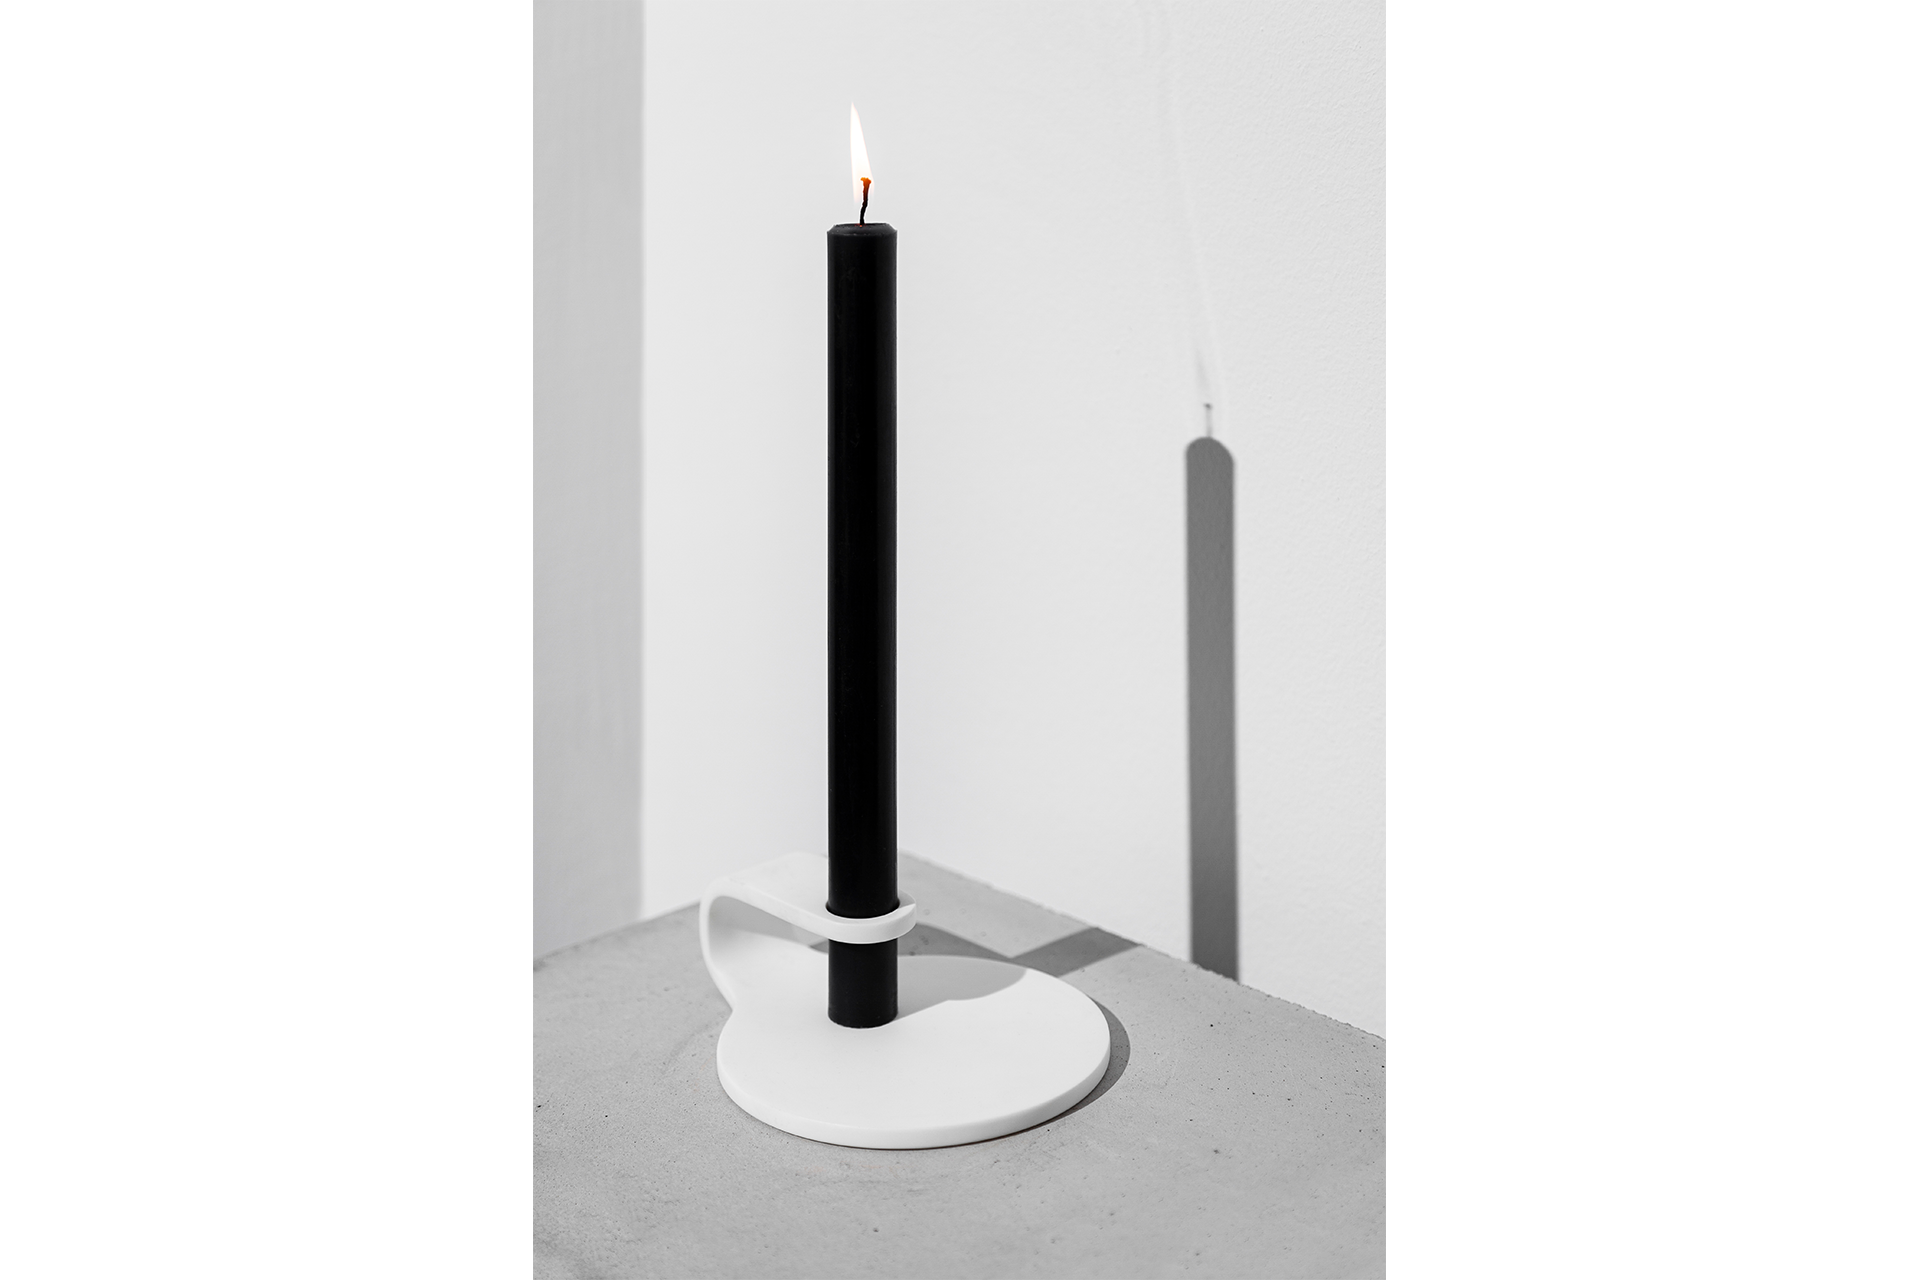 Hole Candlestick with Black Candle